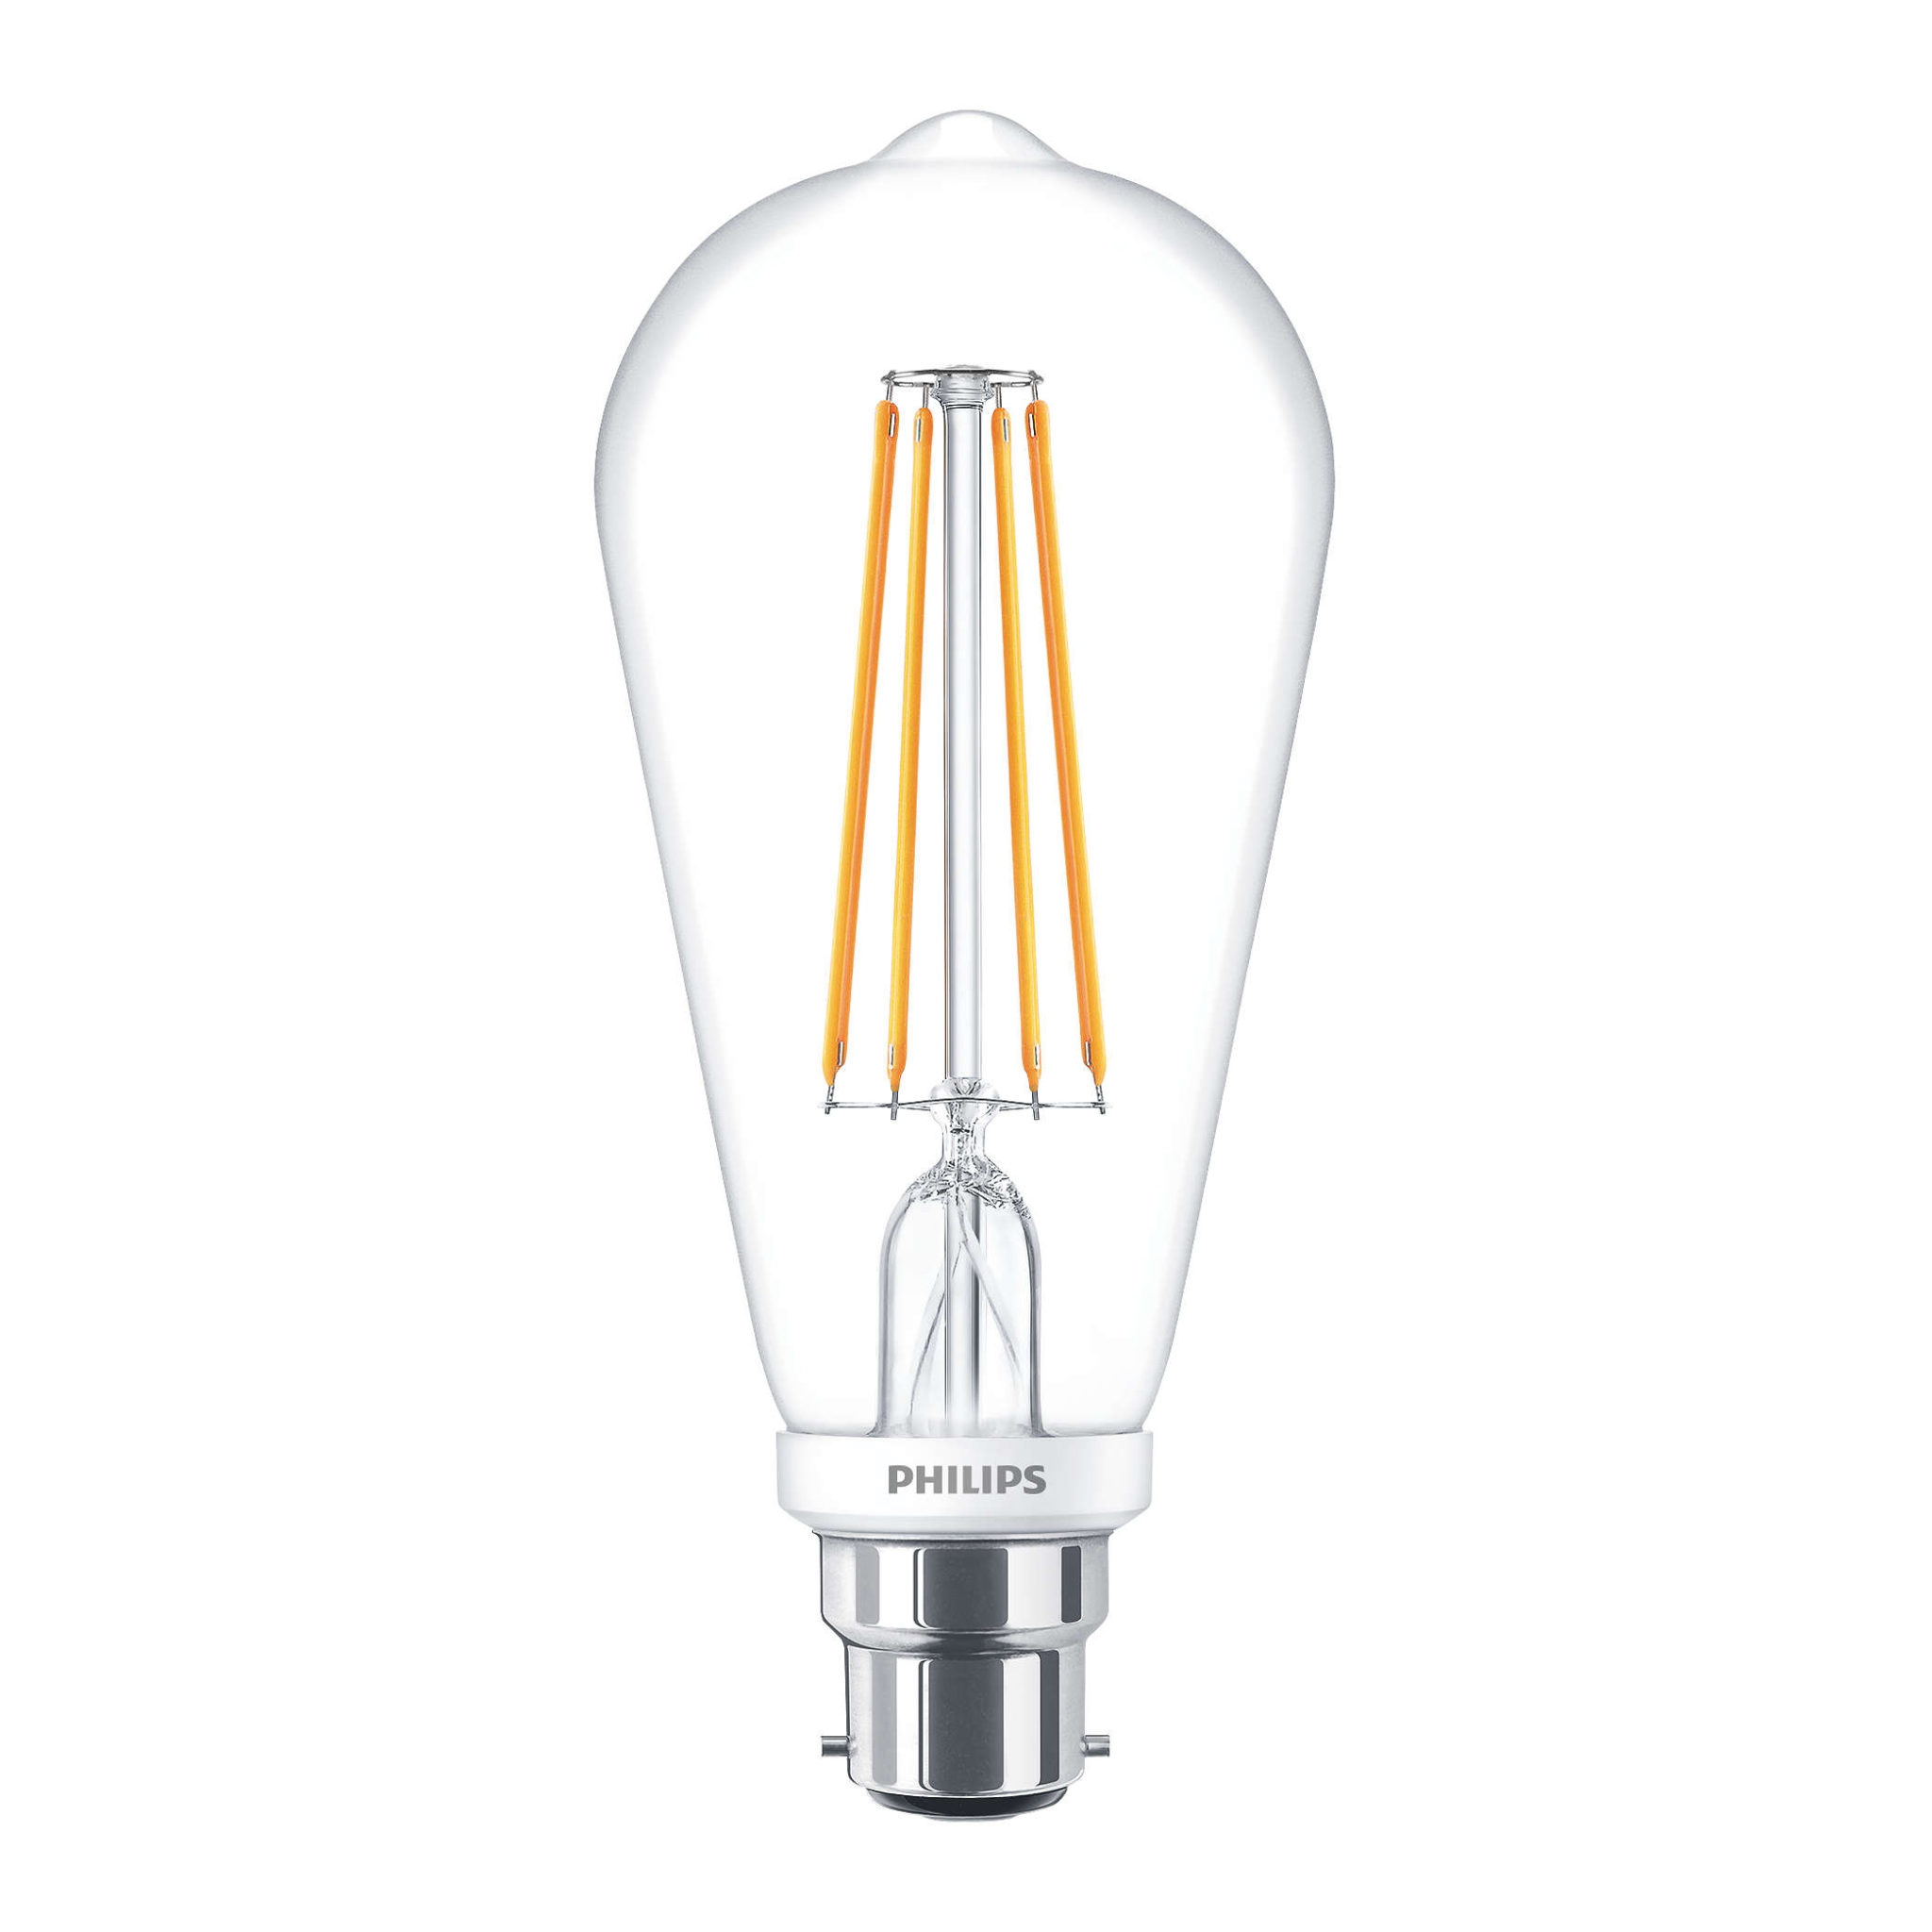 Philips Large Led Filament Bulb Clear St64 B22 7w K